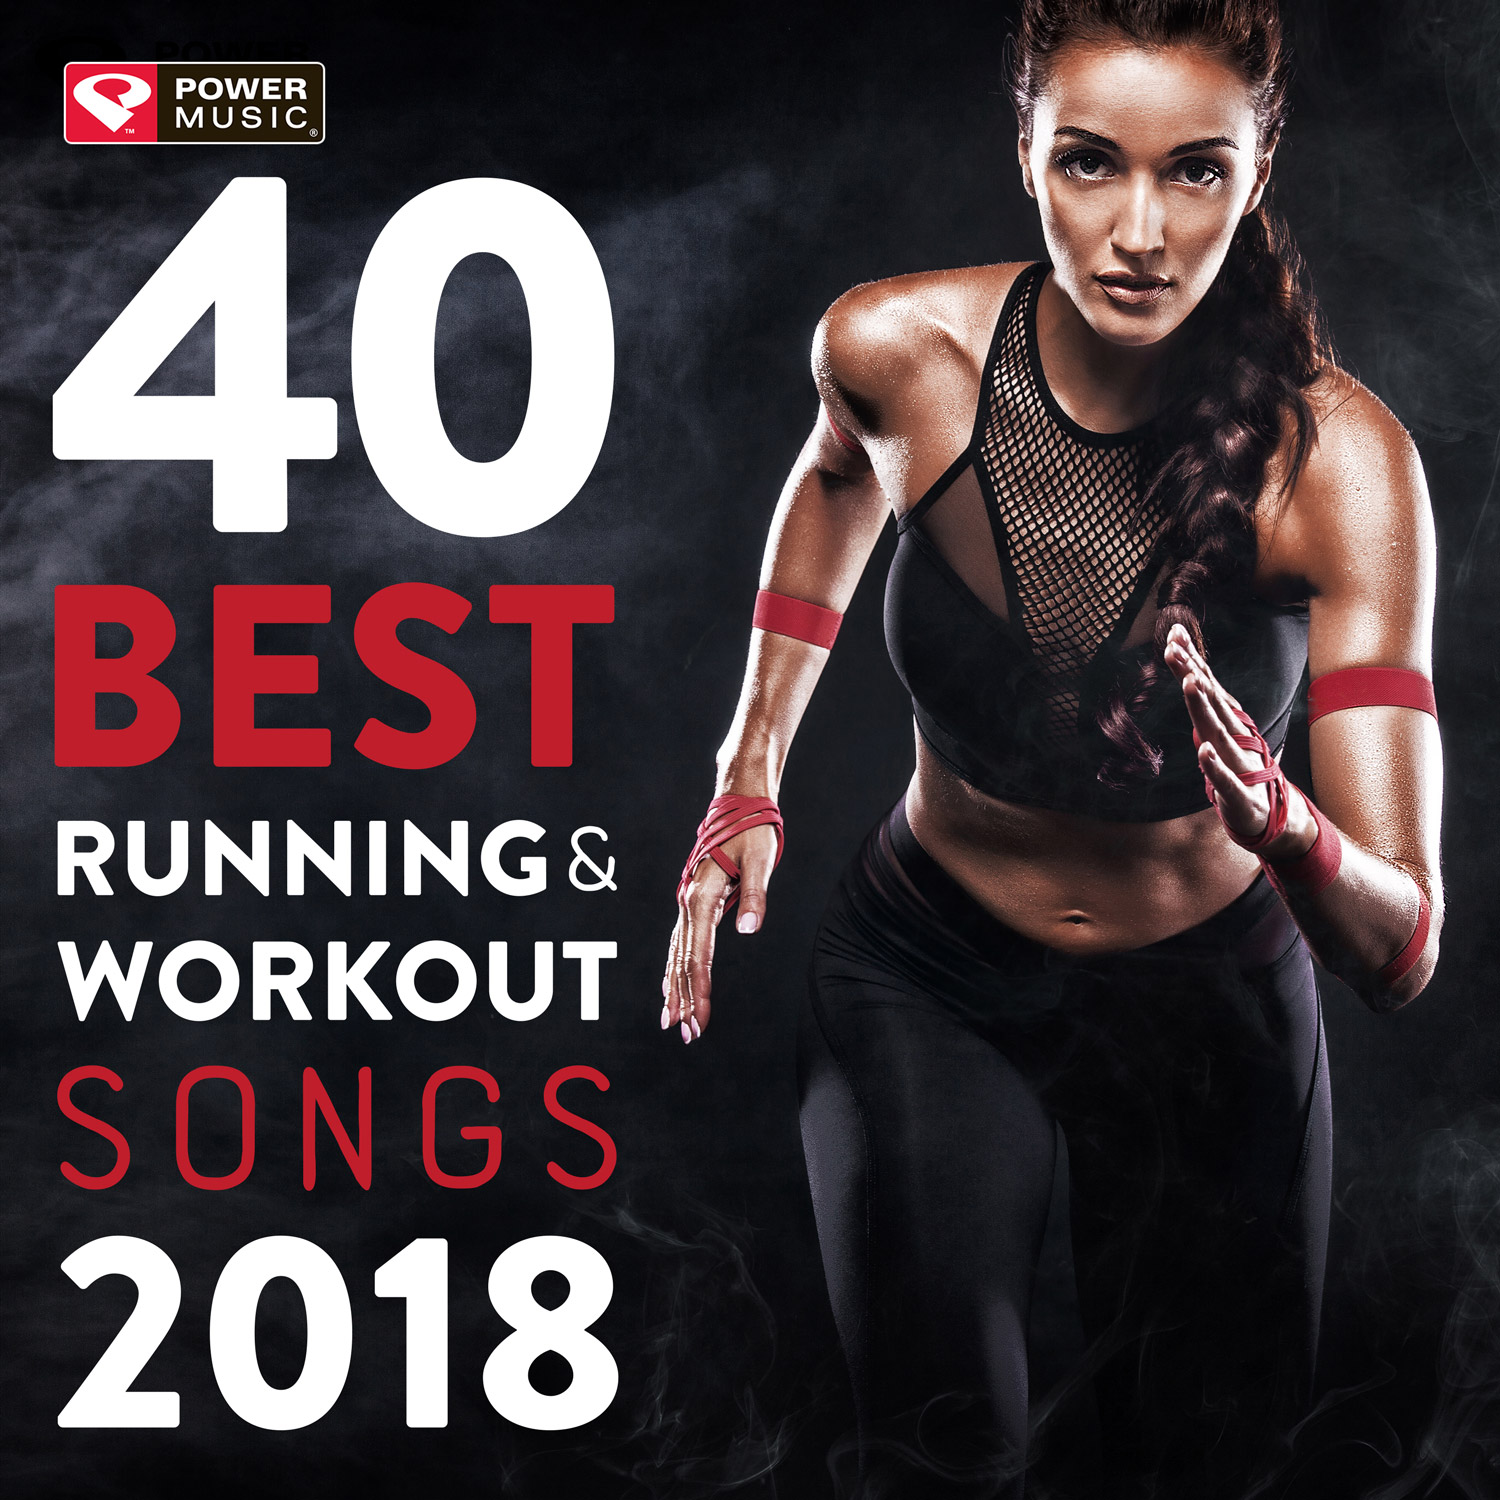 WELCOME TO WORKOUT MUSIC